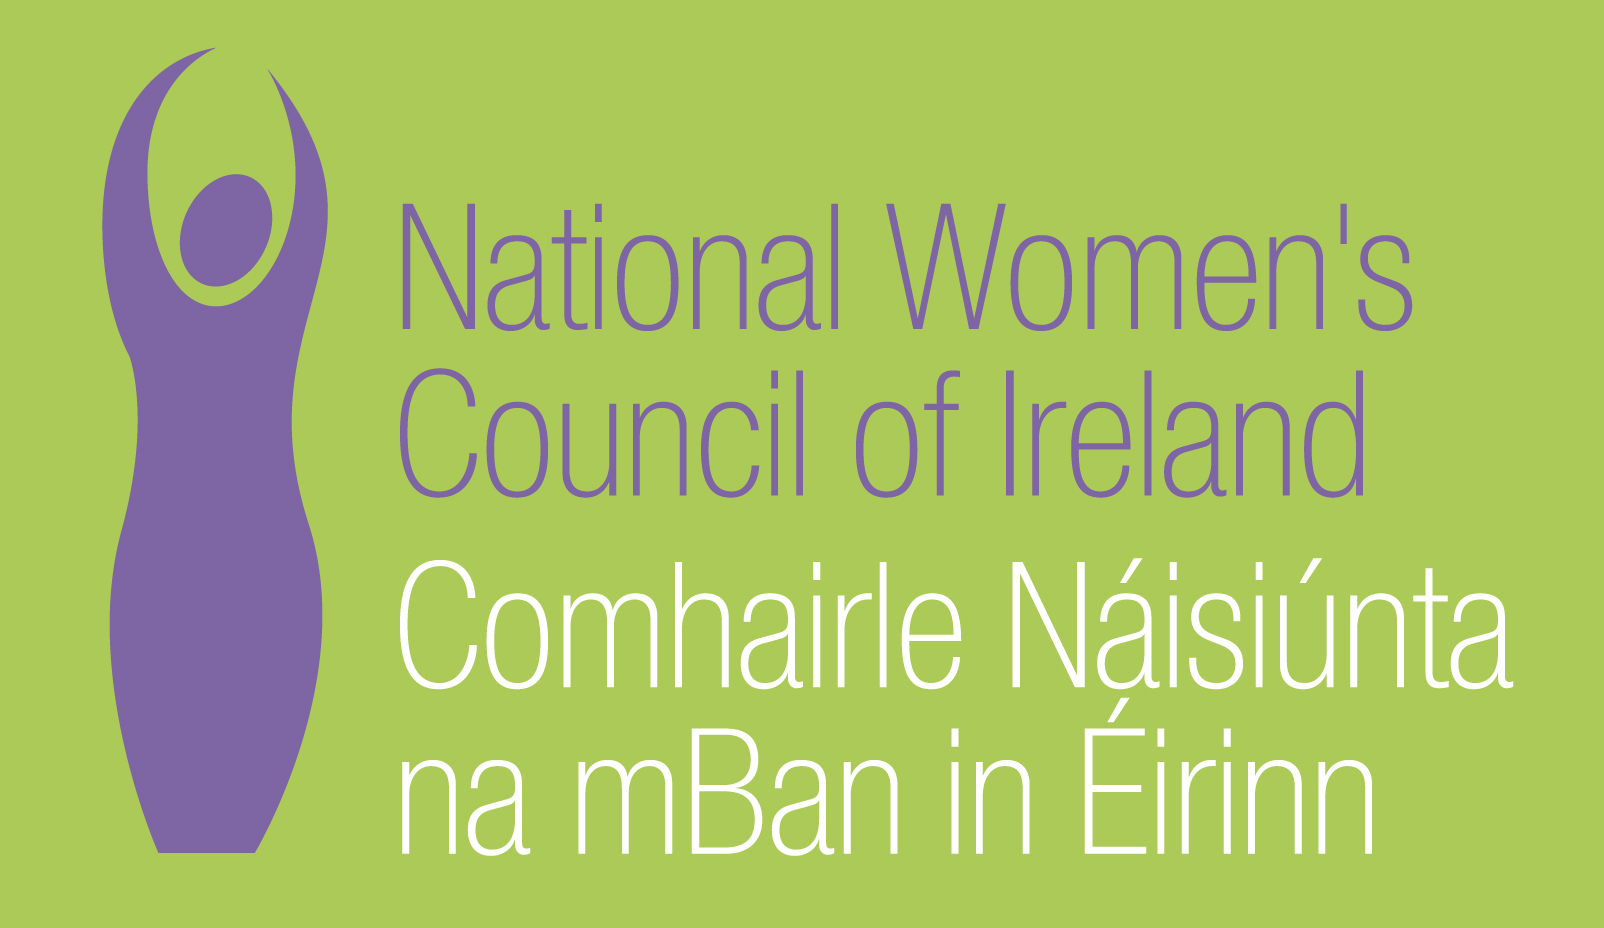 Nat concil Women Ireland.jpg